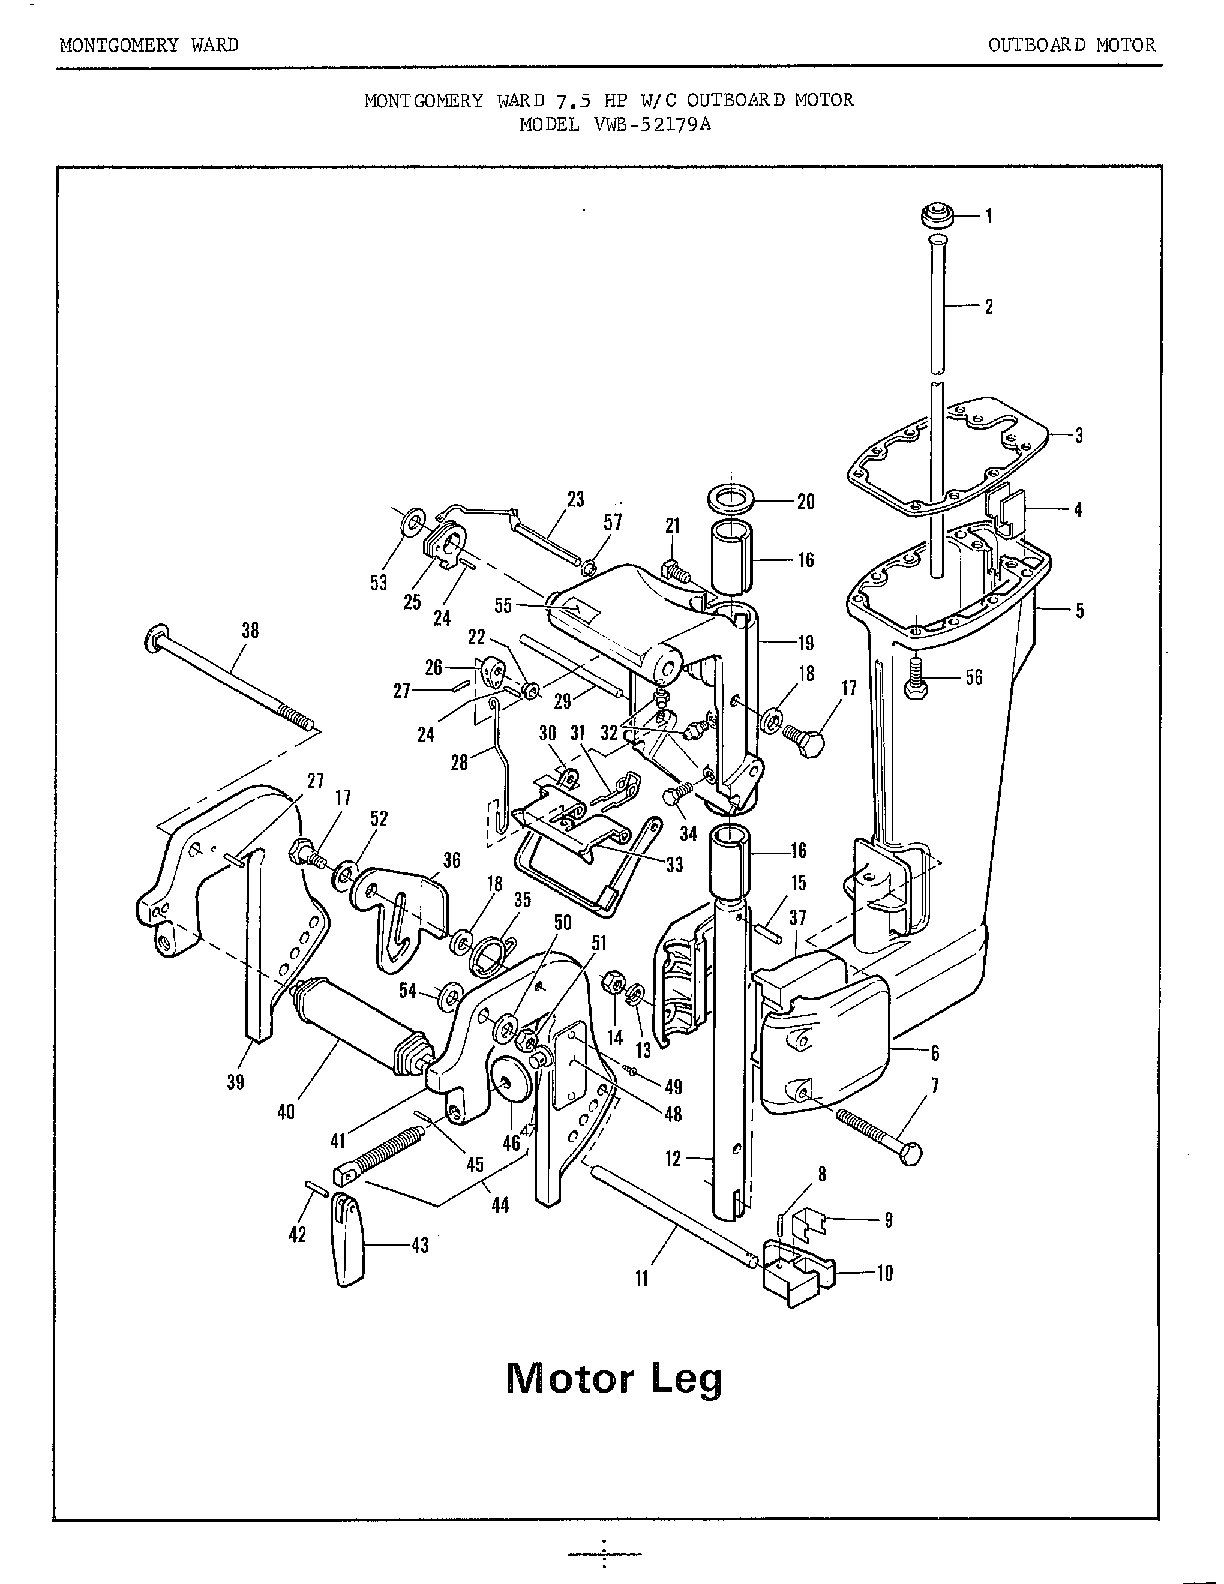 20 Hp Mercury Outboard Repair Manual